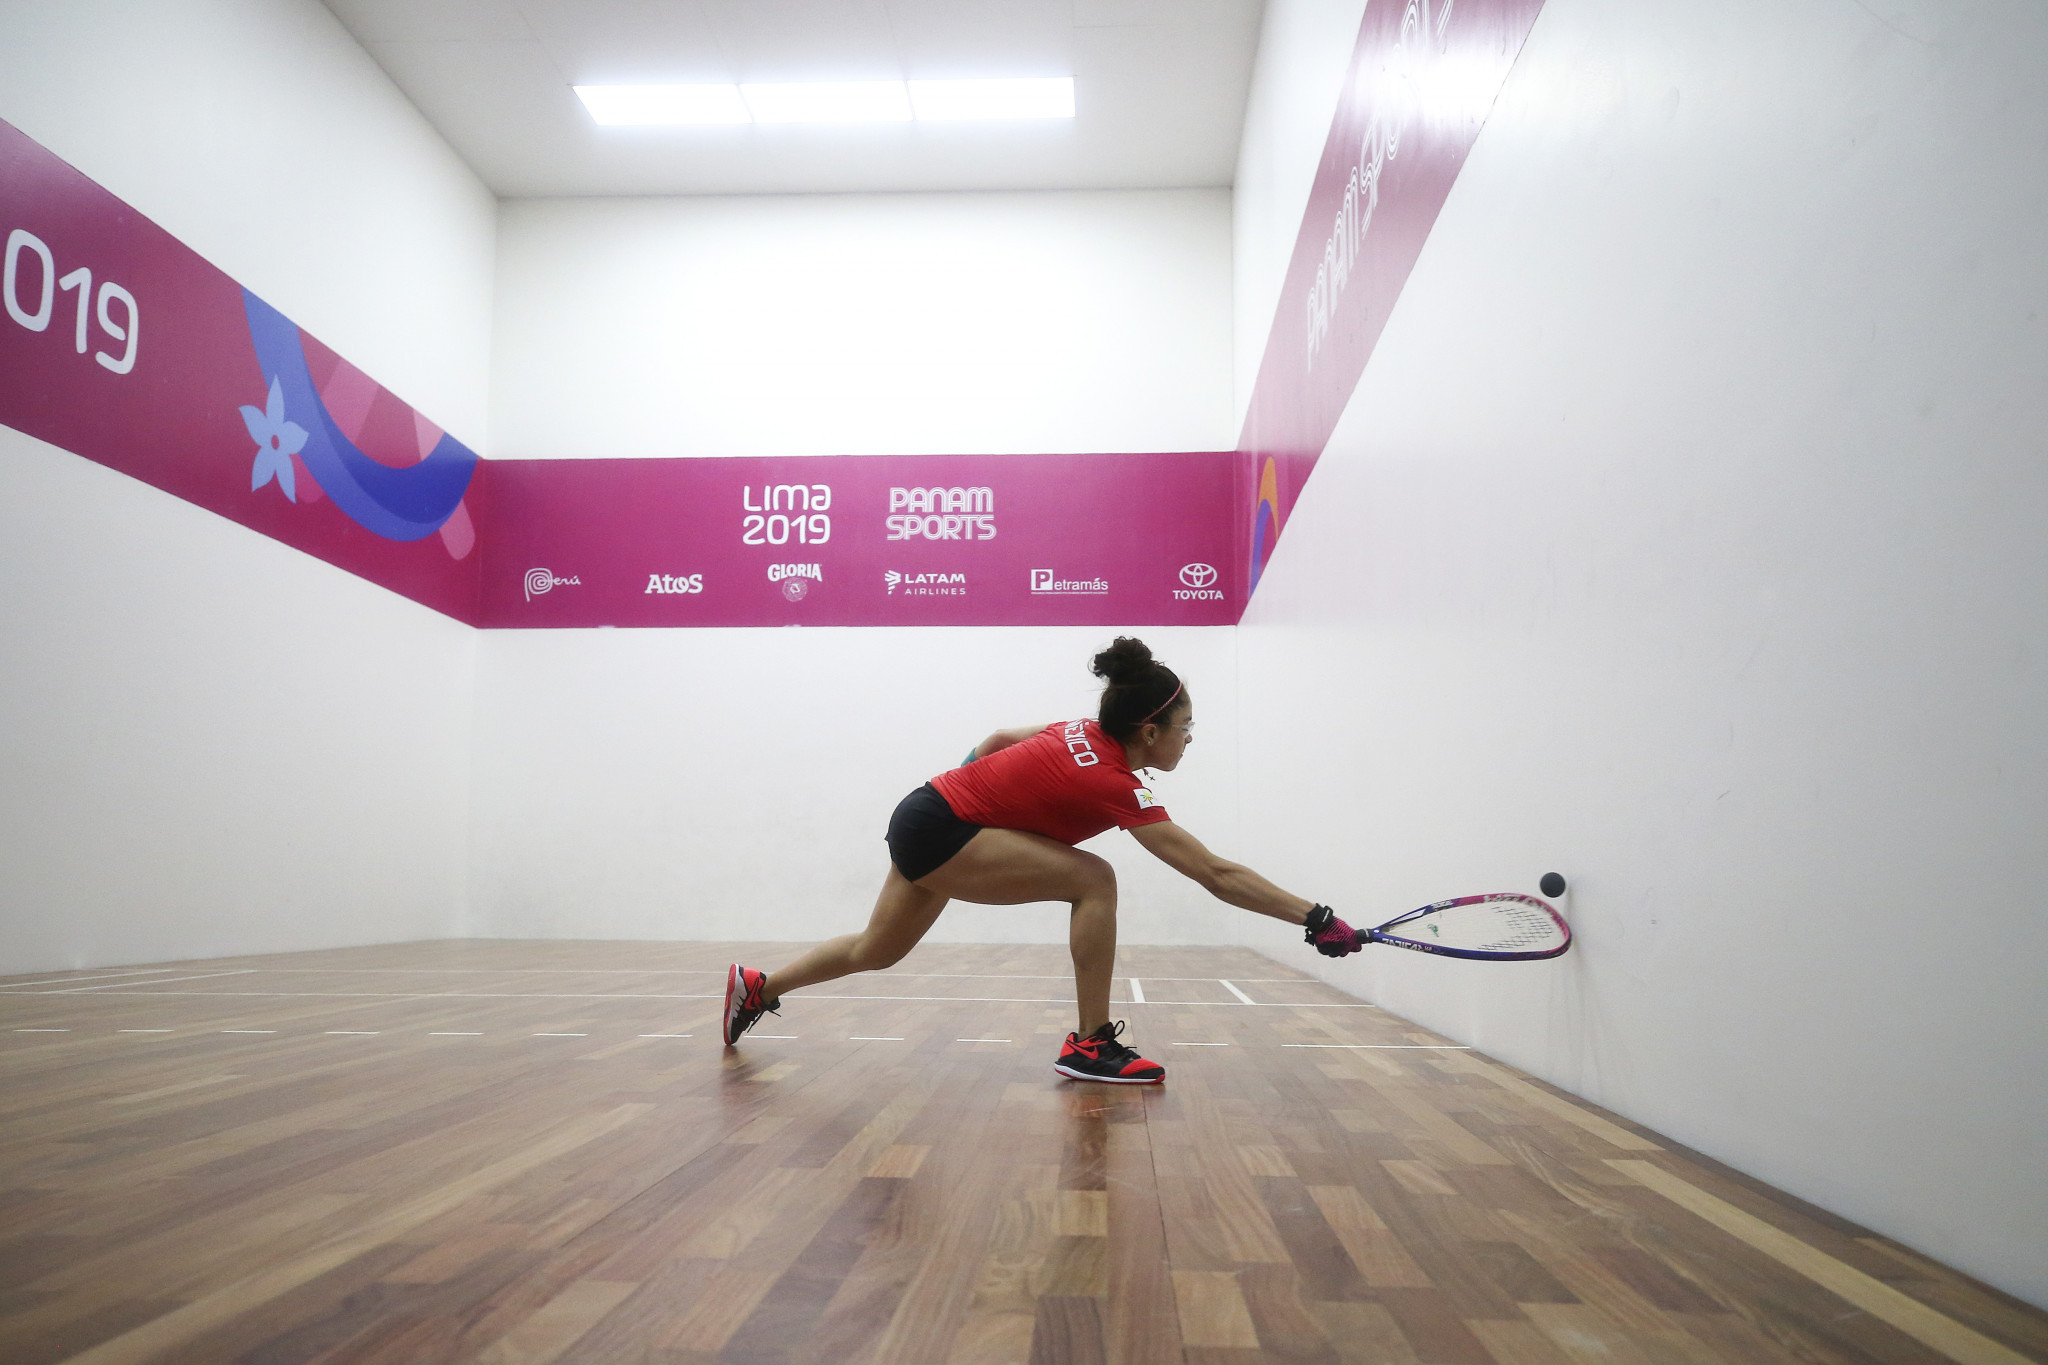 Paola Longoria continued Mexico's joy in racquetball, winning the team event to earn her third gold medal at three consecutive Pan American Games ©Lima 2019